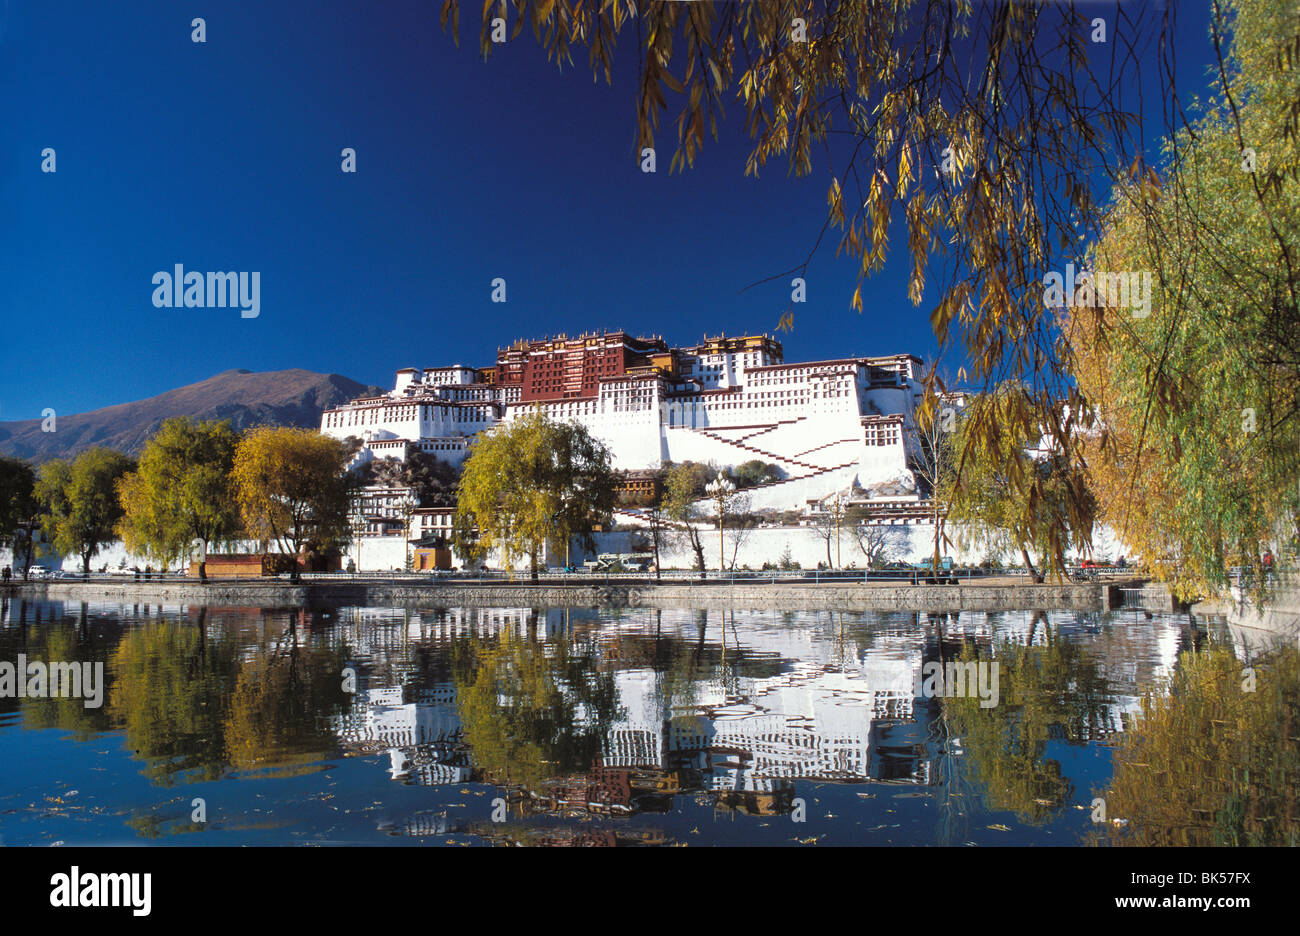 Potala Palace in Lhasa, UNESCO World Heritage Site, Lhasa, Tibet, China, Asia - Stock Image